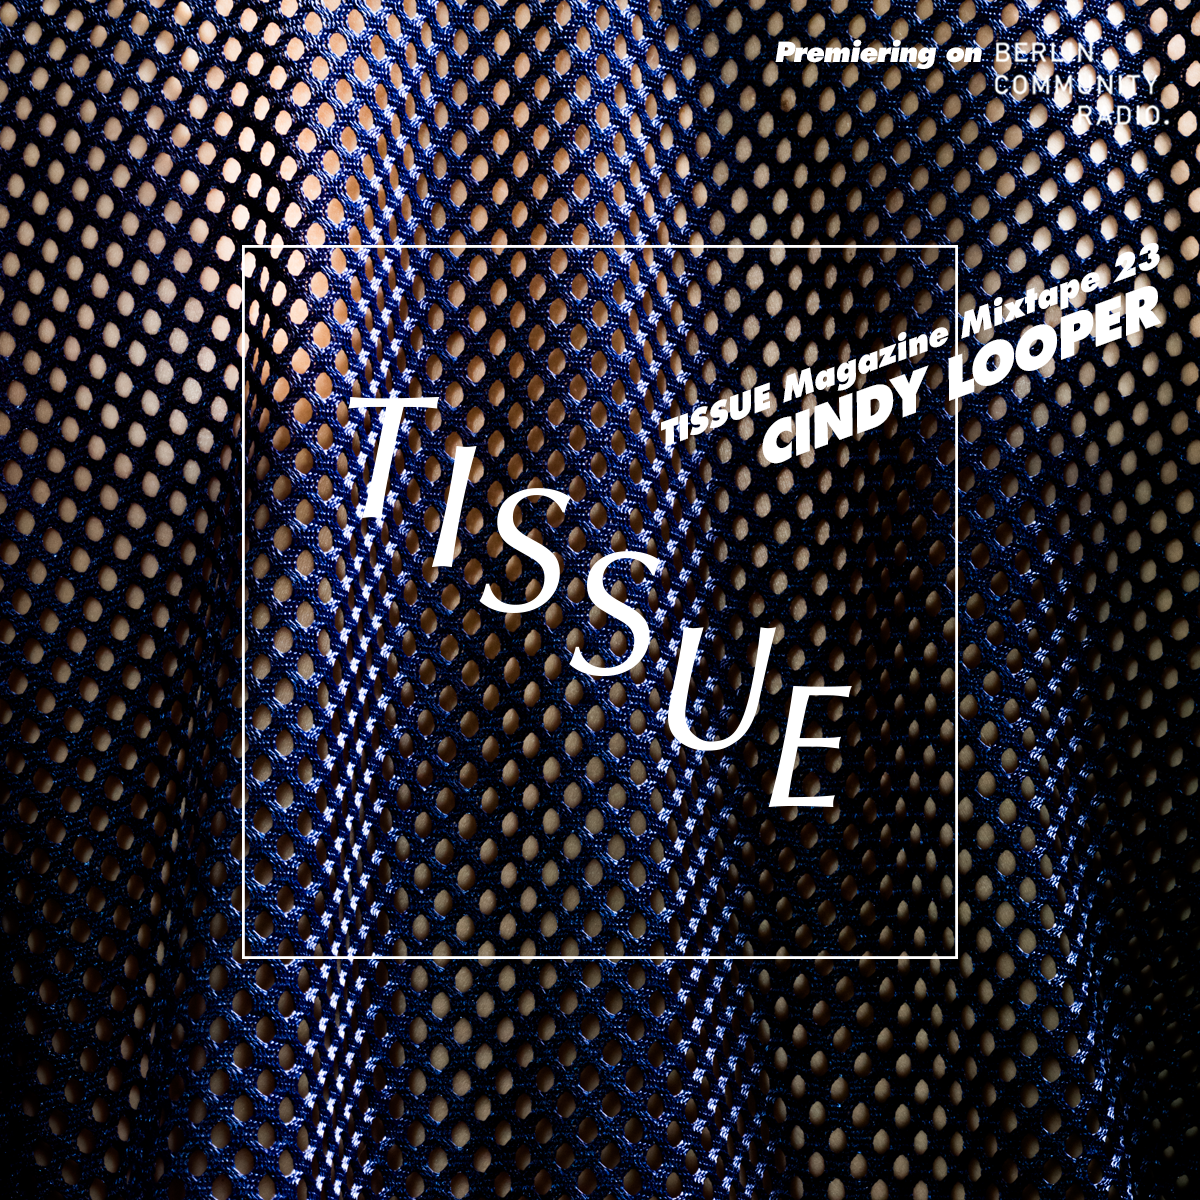 TISSUE Magazine Mixtape 23 by Cindy Looper